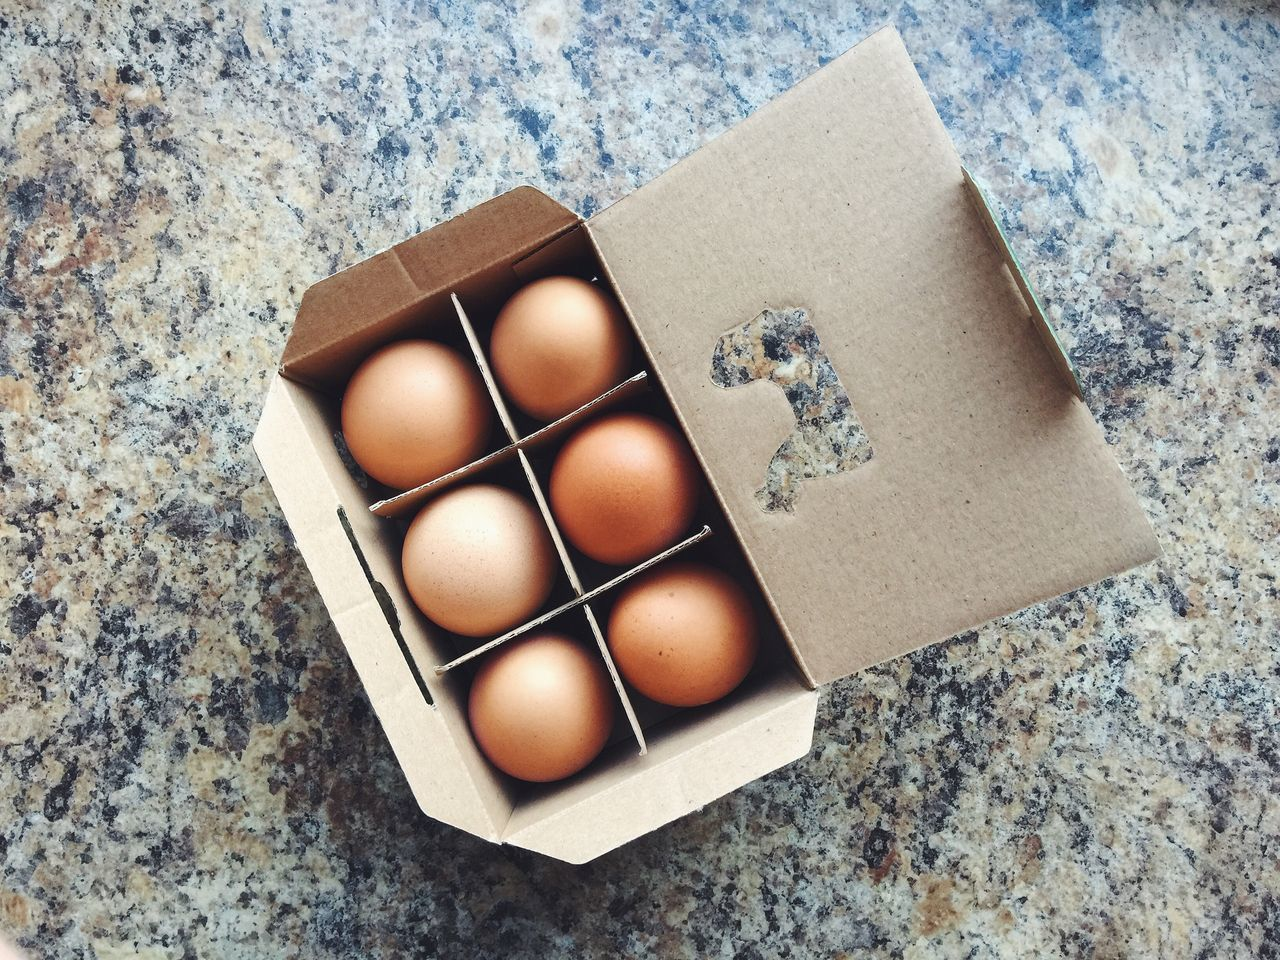 a box of six eggs on the table Box Box - Container Carton Box Directly Above Egg Egg Carton Eggshell Farm Food Food And Drink Fragility Freshness No People Six